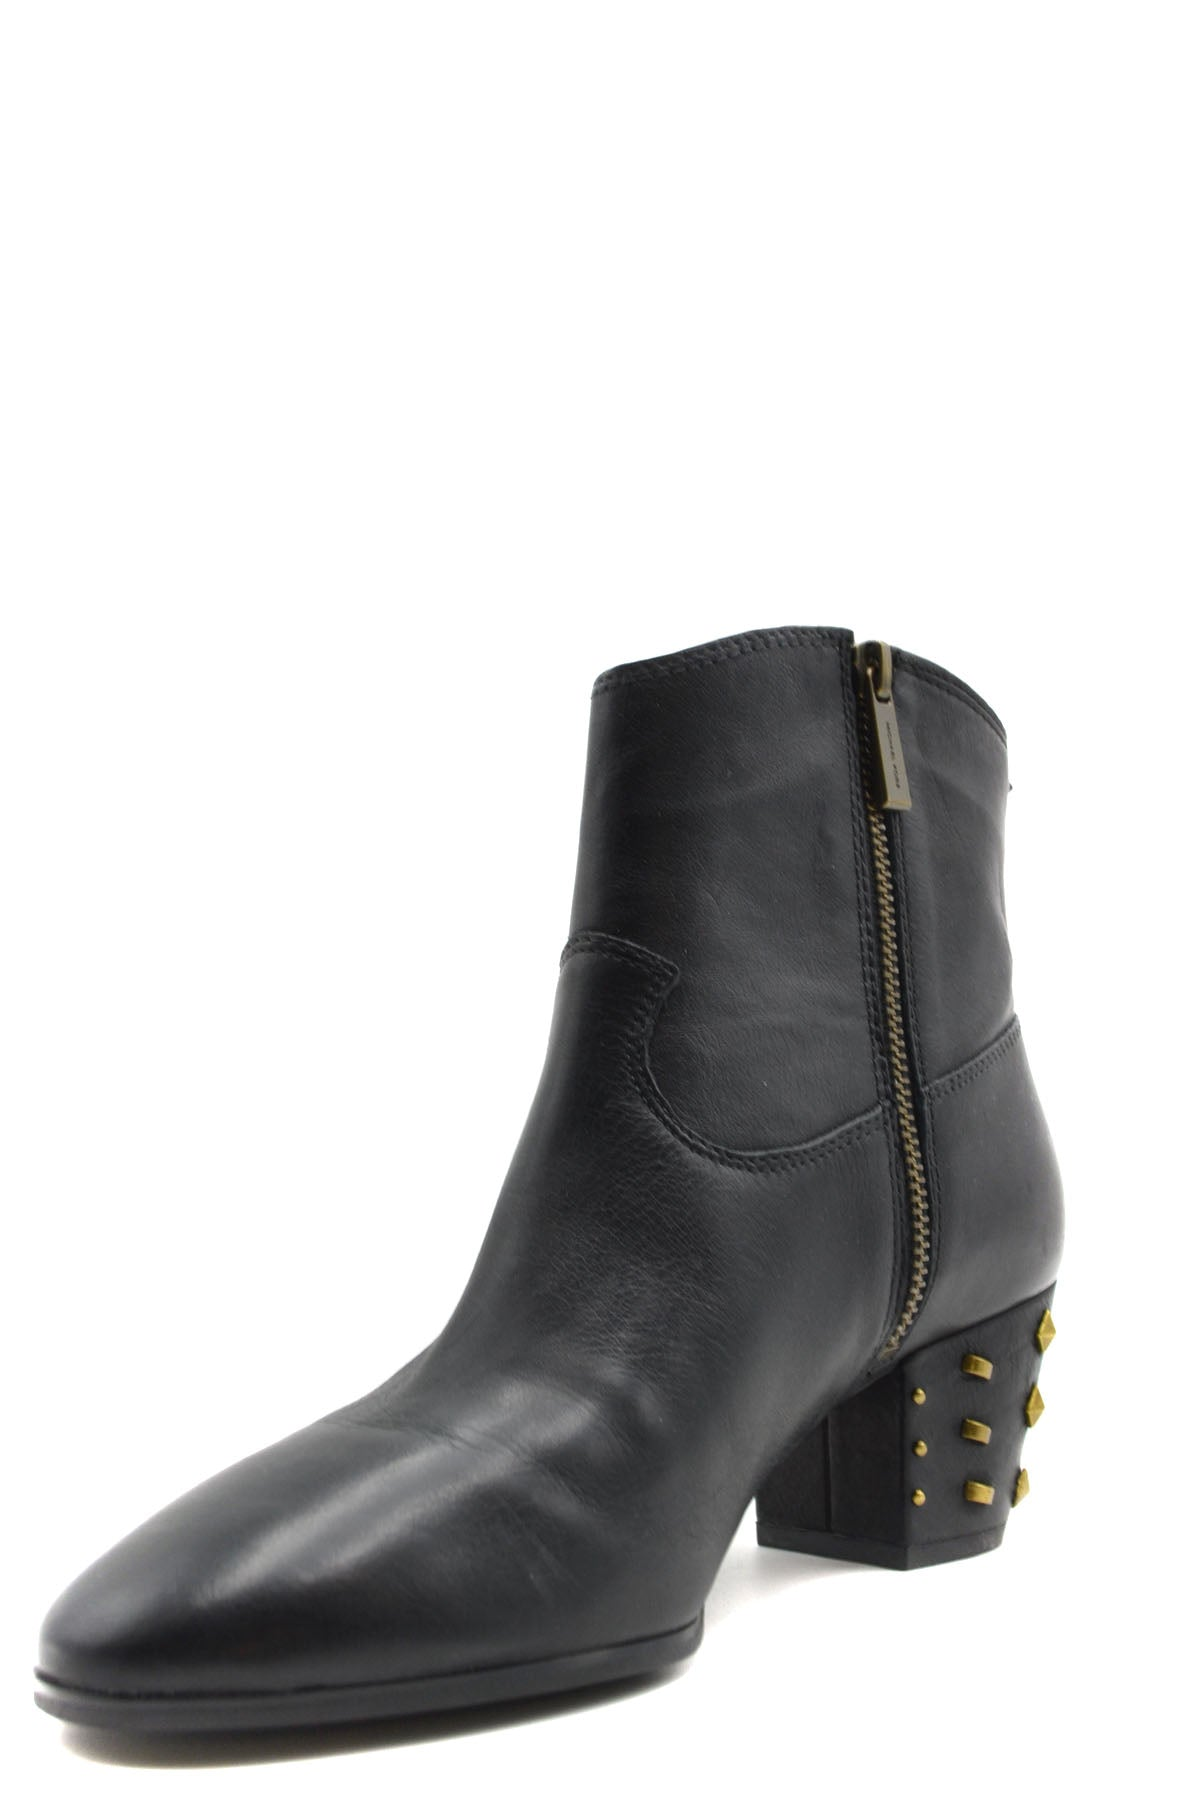 Shoes Michael Kors-Women's Fashion - Women's Shoes - Women's Boots-Product Details Terms: New With LabelMain Color: BlackType Of Accessory: BootsSeason: Fall / WinterMade In: VietnamGender: WomanHeel'S Height: 6.5Size: EuComposition: Leather 100%Year: 2021Manufacturer Part Number: 40T8Avmb8L-Keyomi-Sook